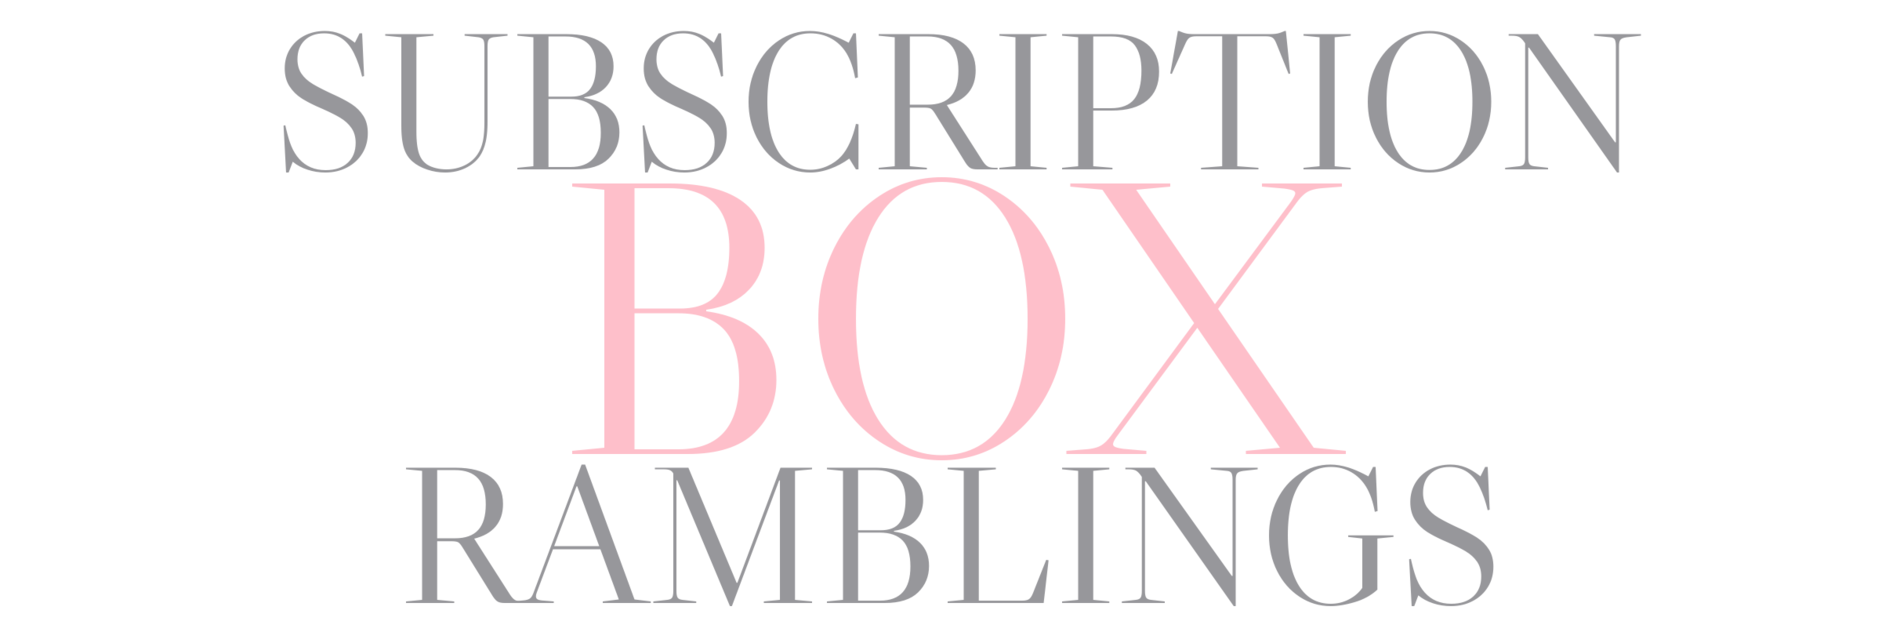 Subscription Box Ramblings